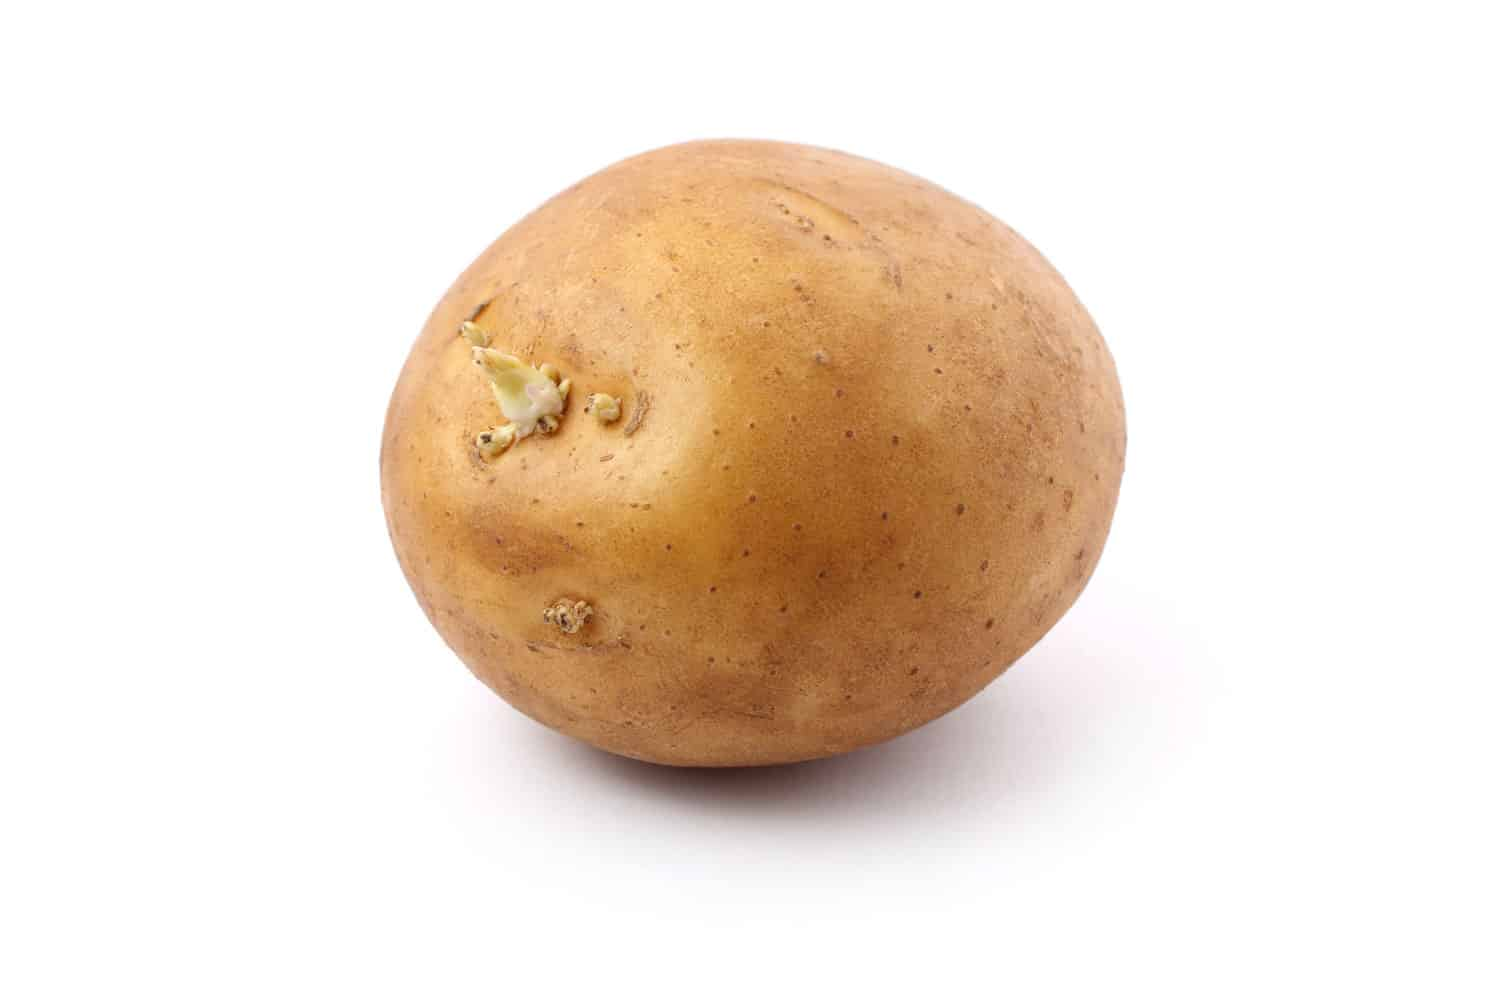 An up close photo of a potato germinating on a white background